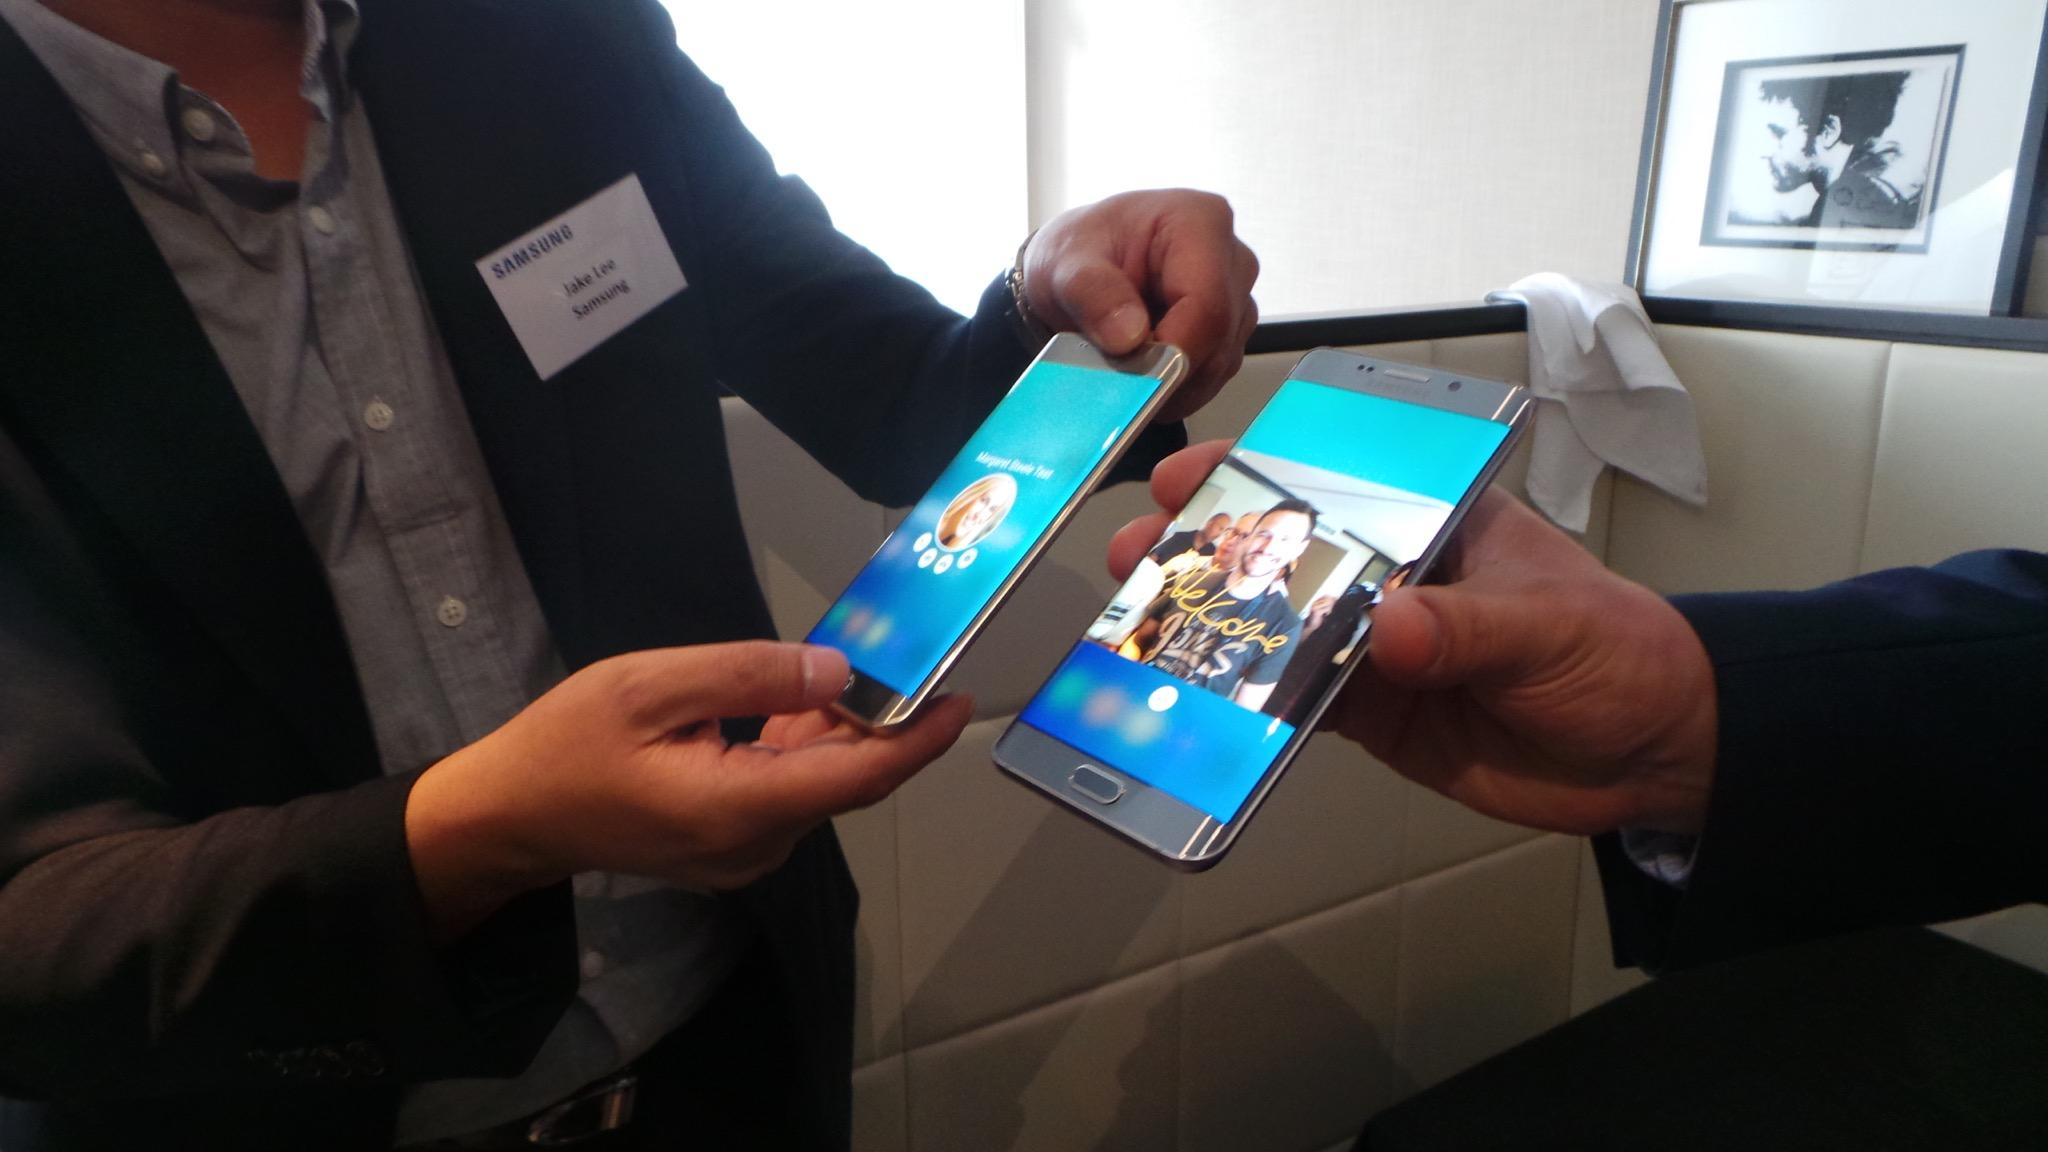 Samsung Galaxy  S6 Edge Plus frente al Galaxy s6 edge